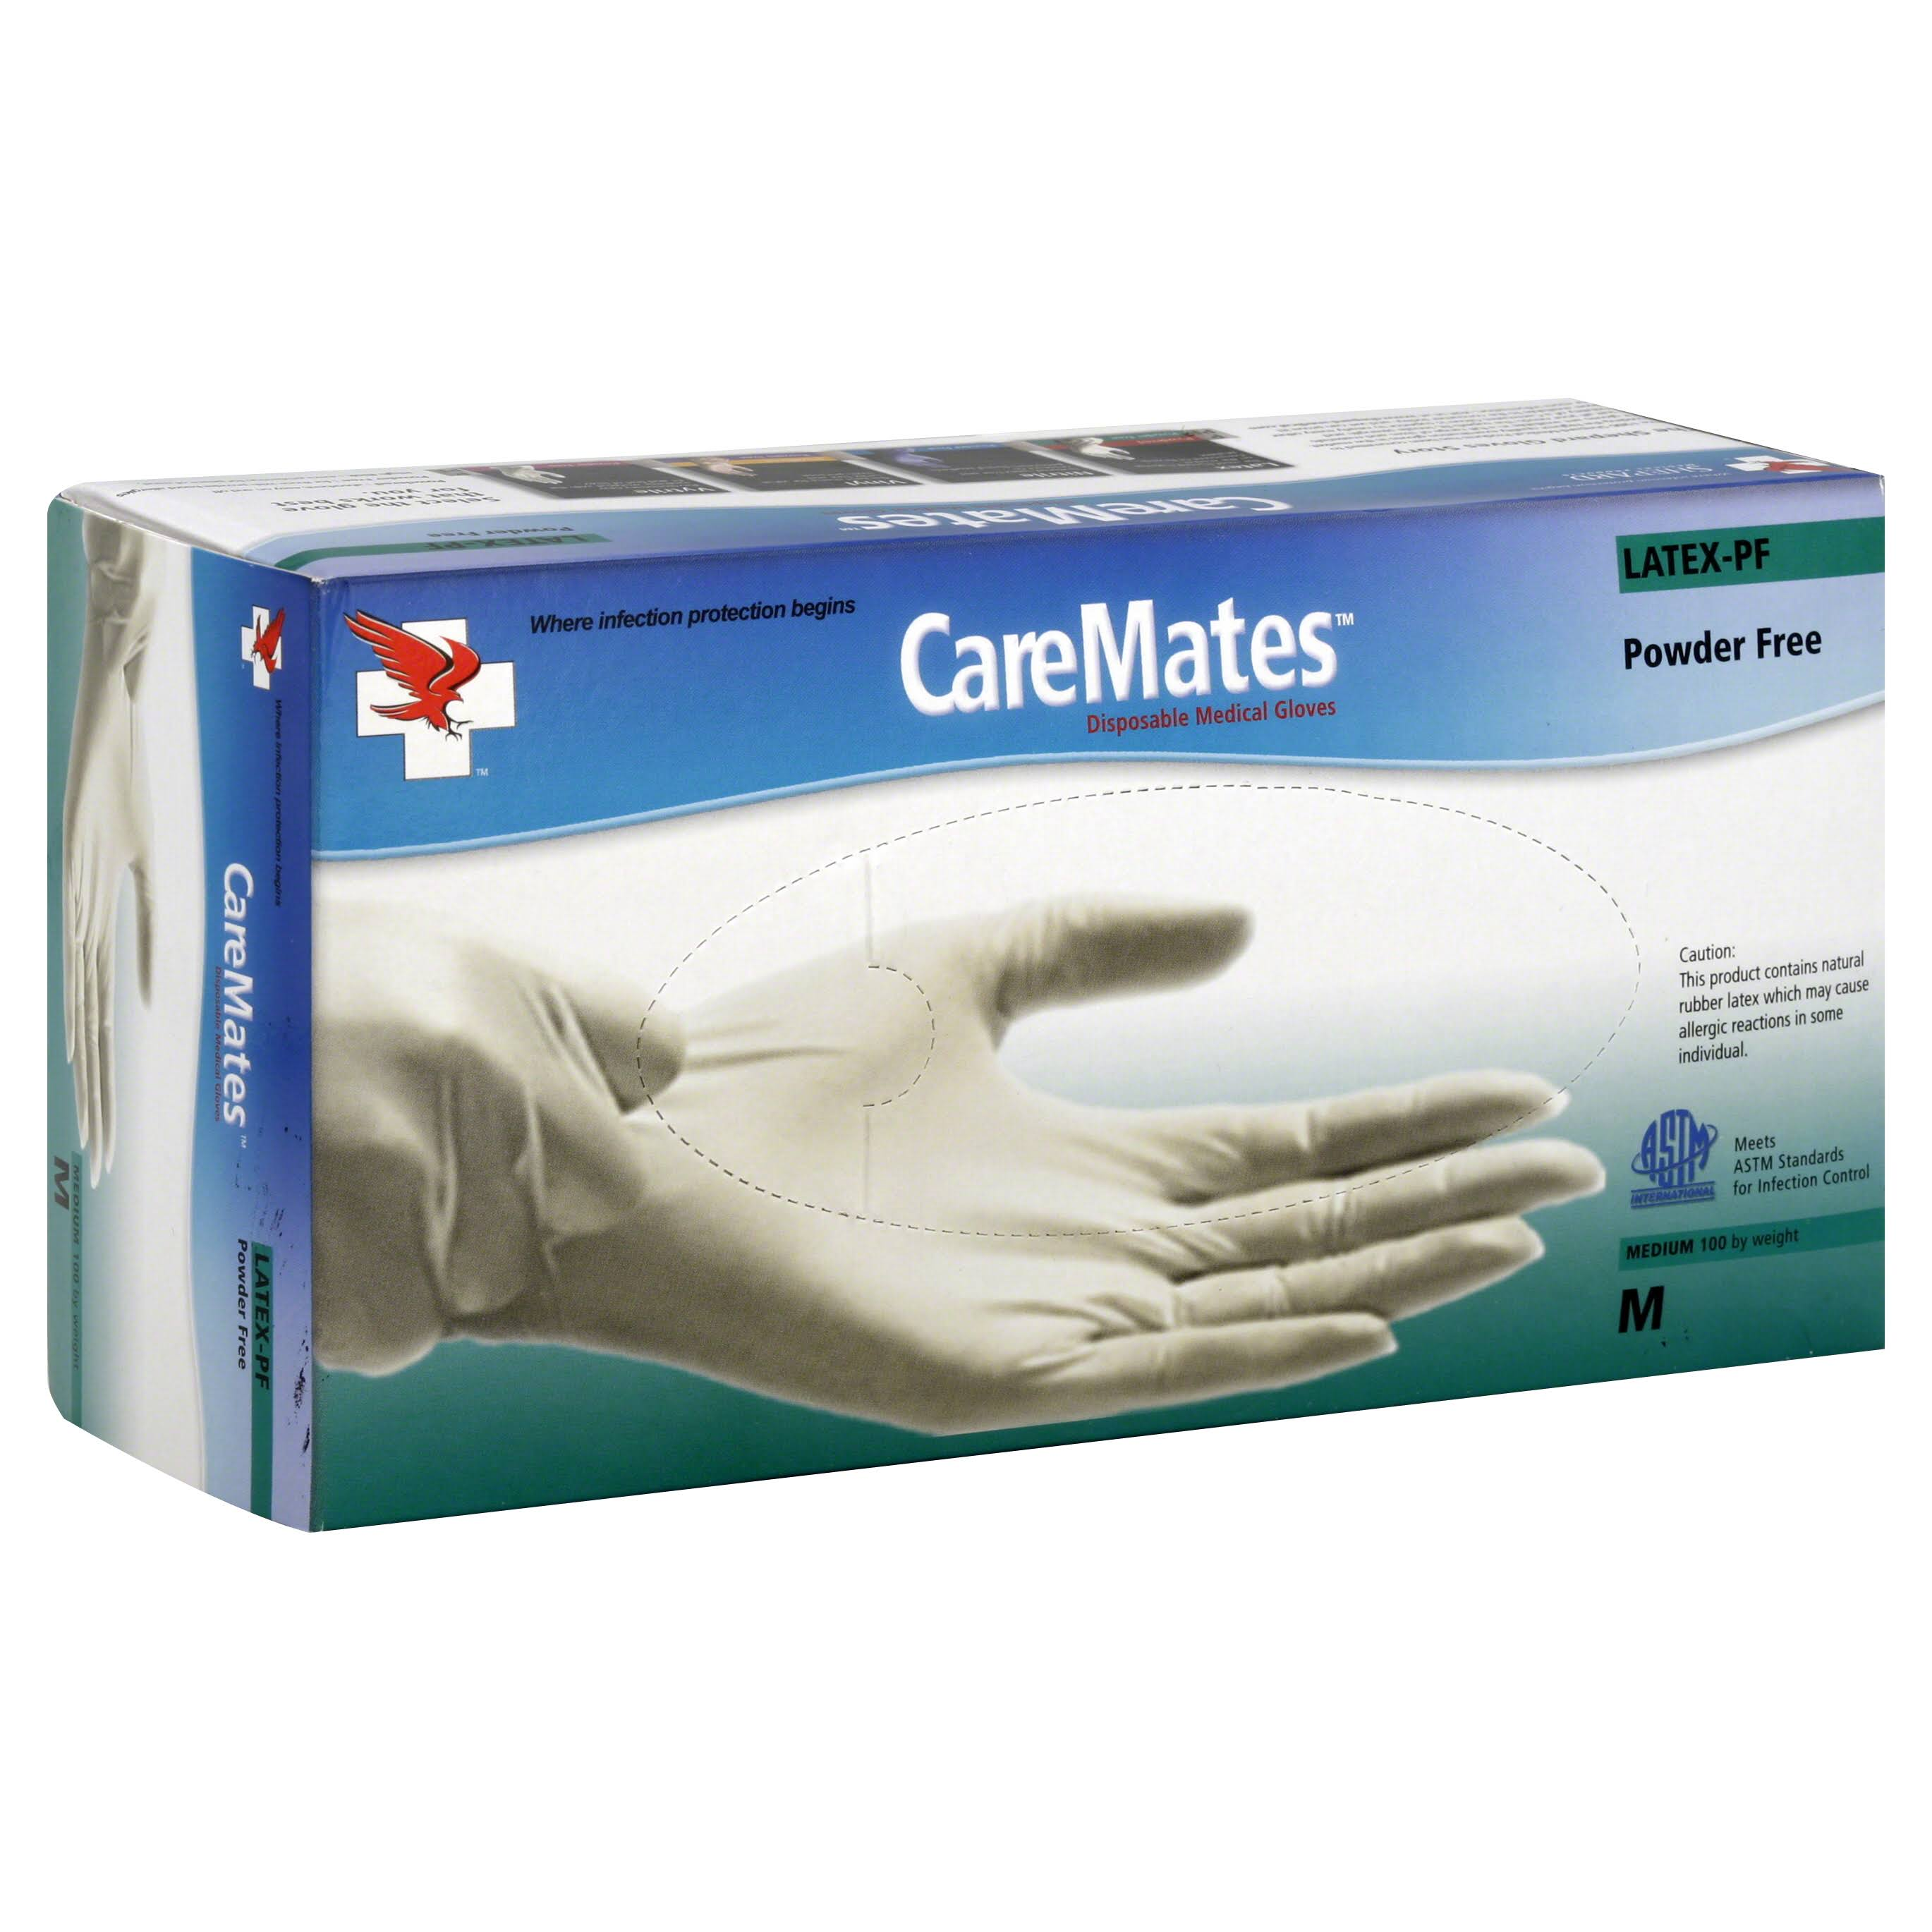 CareMates Powder Free Latex Gloves - Medium, 100ct